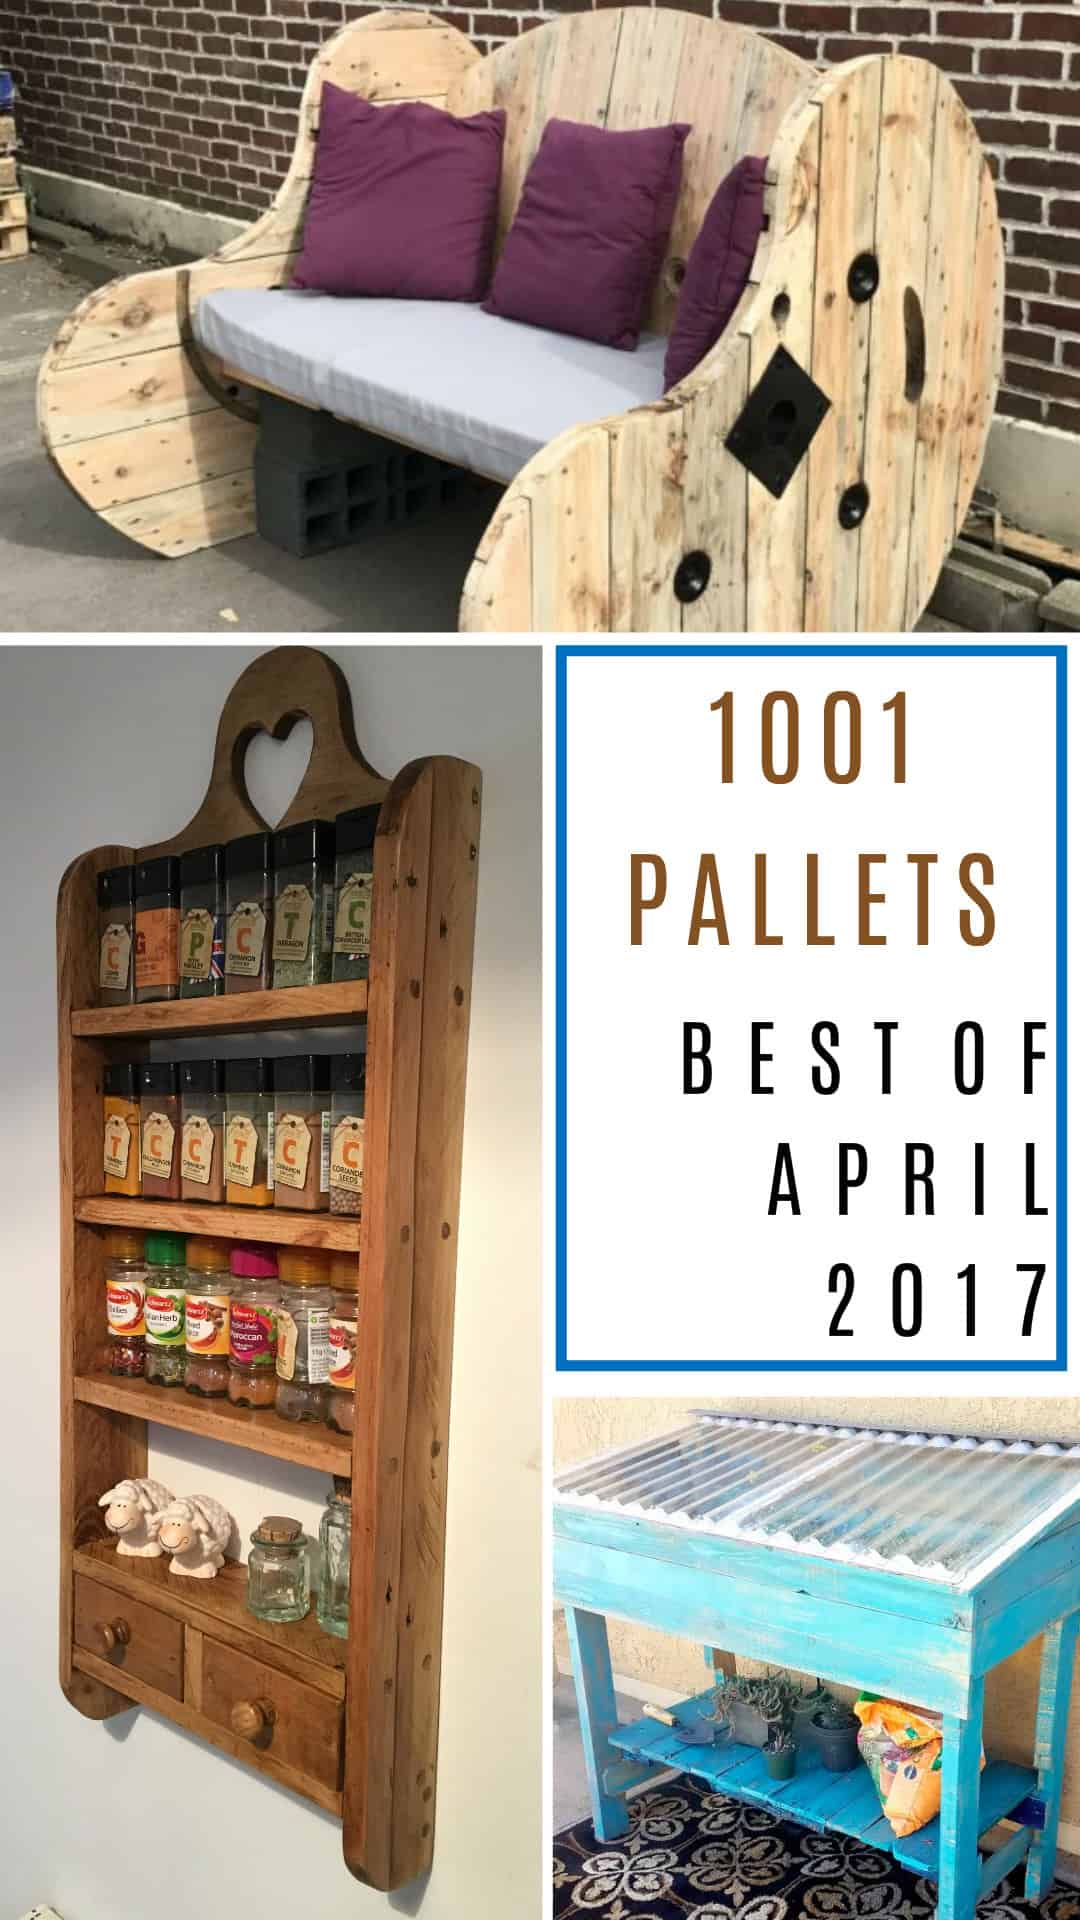 Awesome April Diy Pallet Projects 2017 You Picked Them 1001 Pallets